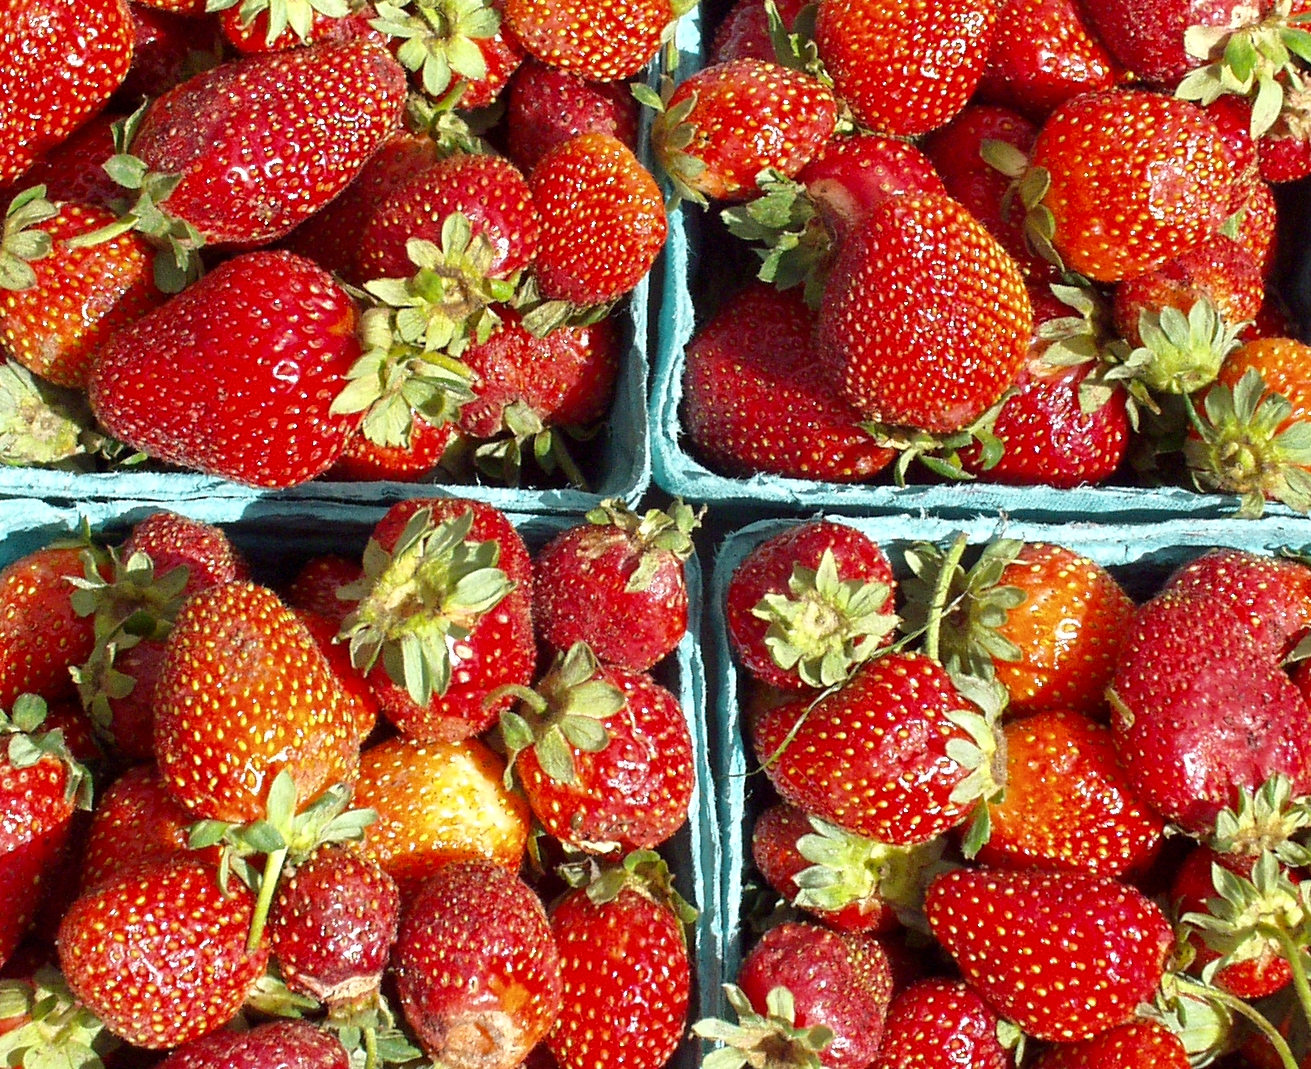 Everbearing strawberries from Sidhu Farms. Photo copyright 2009 by Zachary D. Lyons.